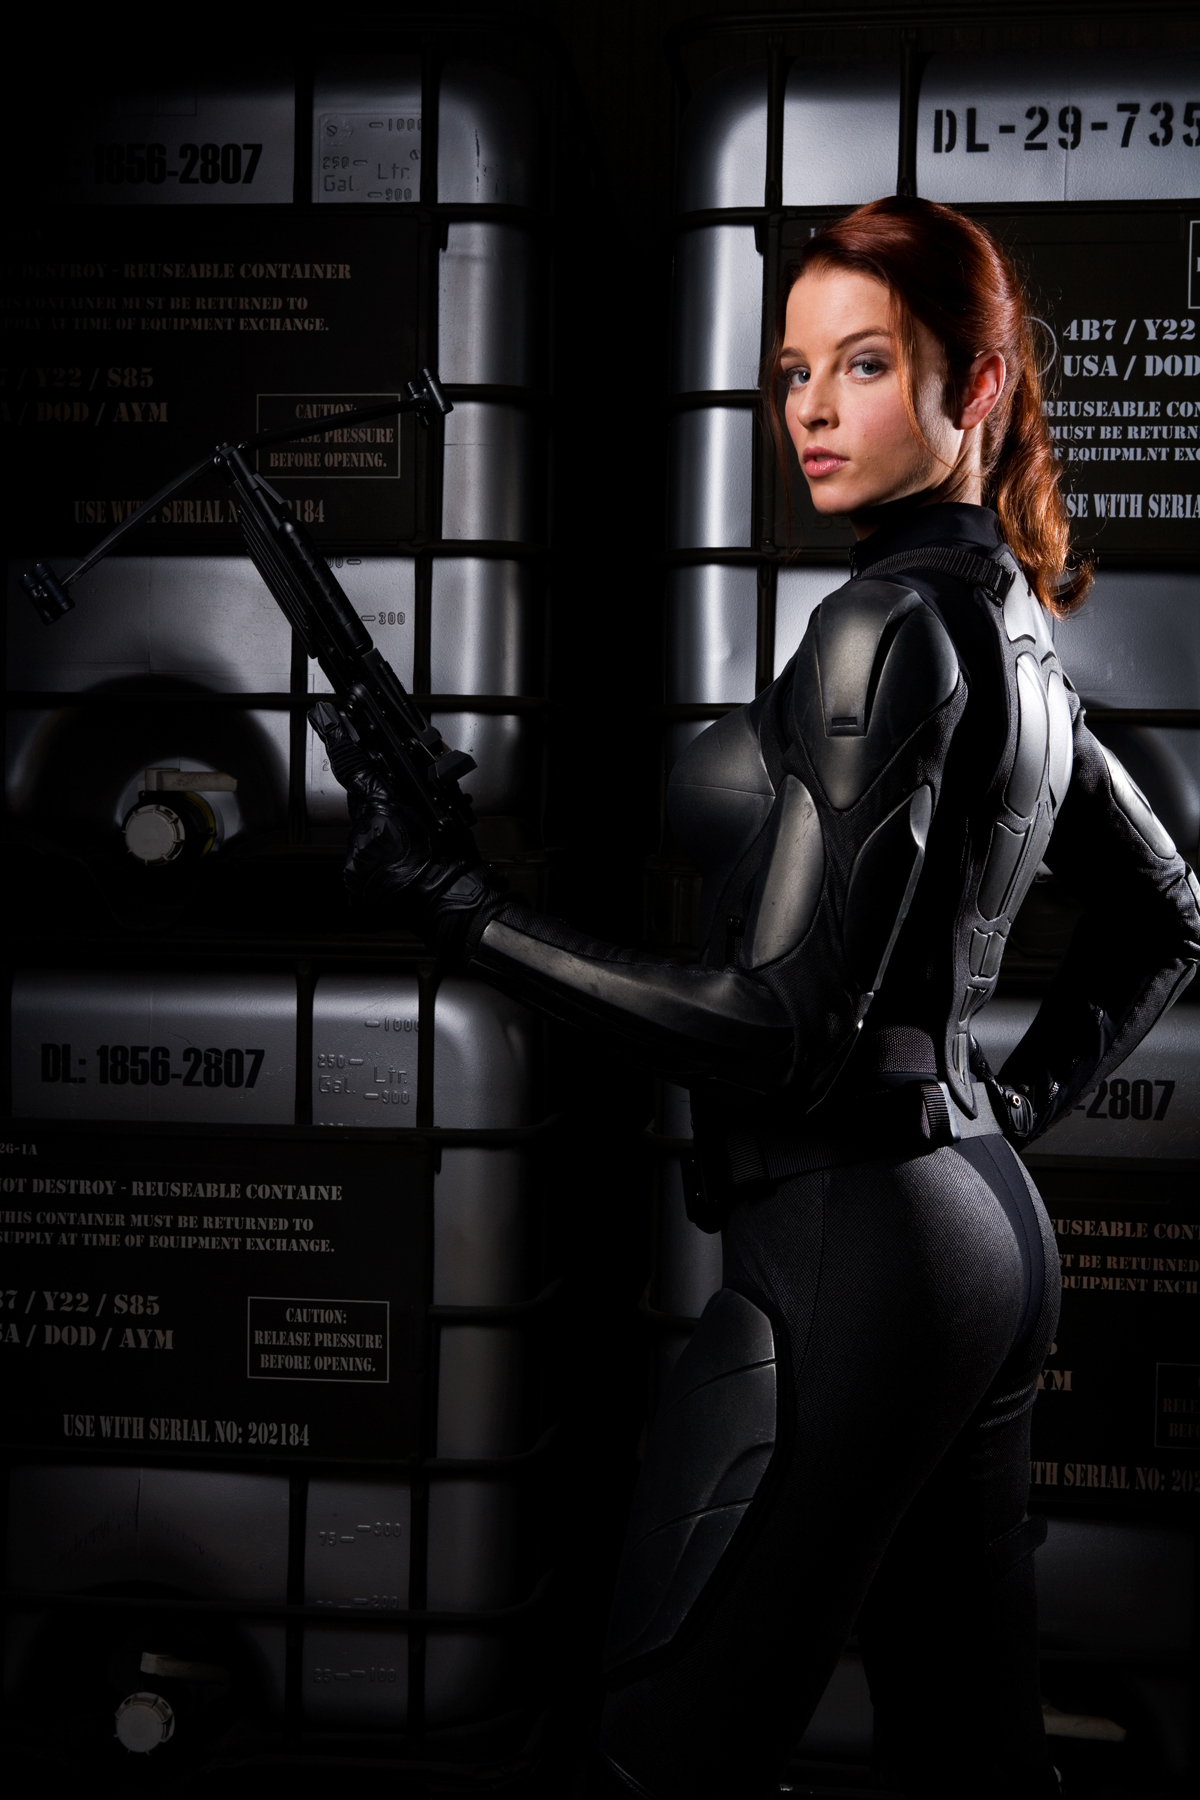 Redhead from gi joe movie